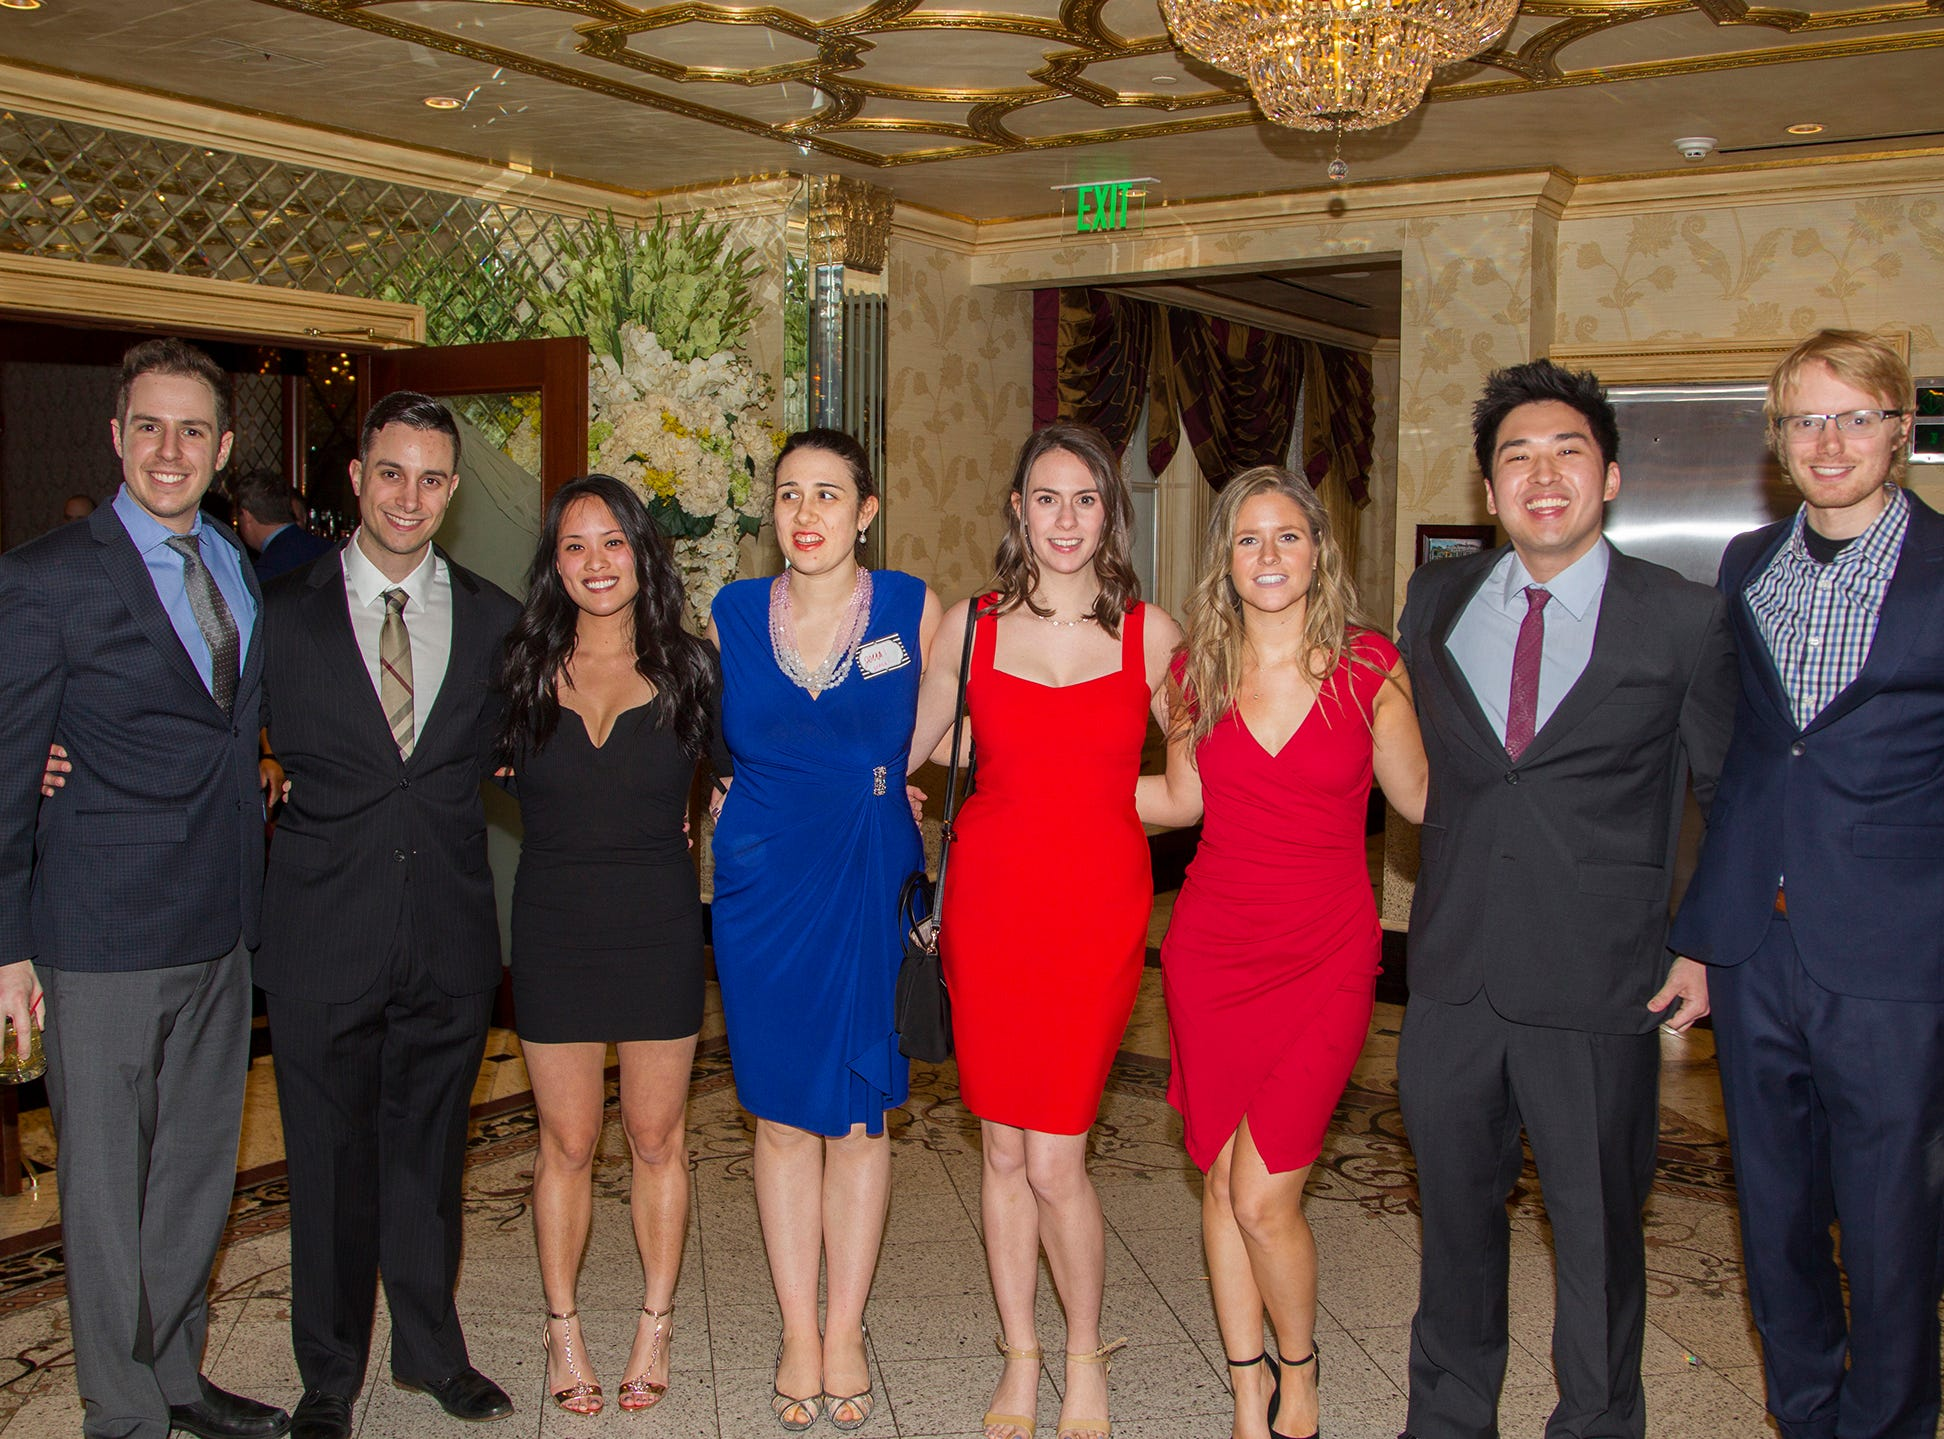 Austin, Rocky, Kathryn, Jenna, Lisa, Jun, Ashlee, Anthony. Institute for Educational Achievement (IEA) held its annual Dinner Dance at Seasons in Washington Township. 02/02/2019